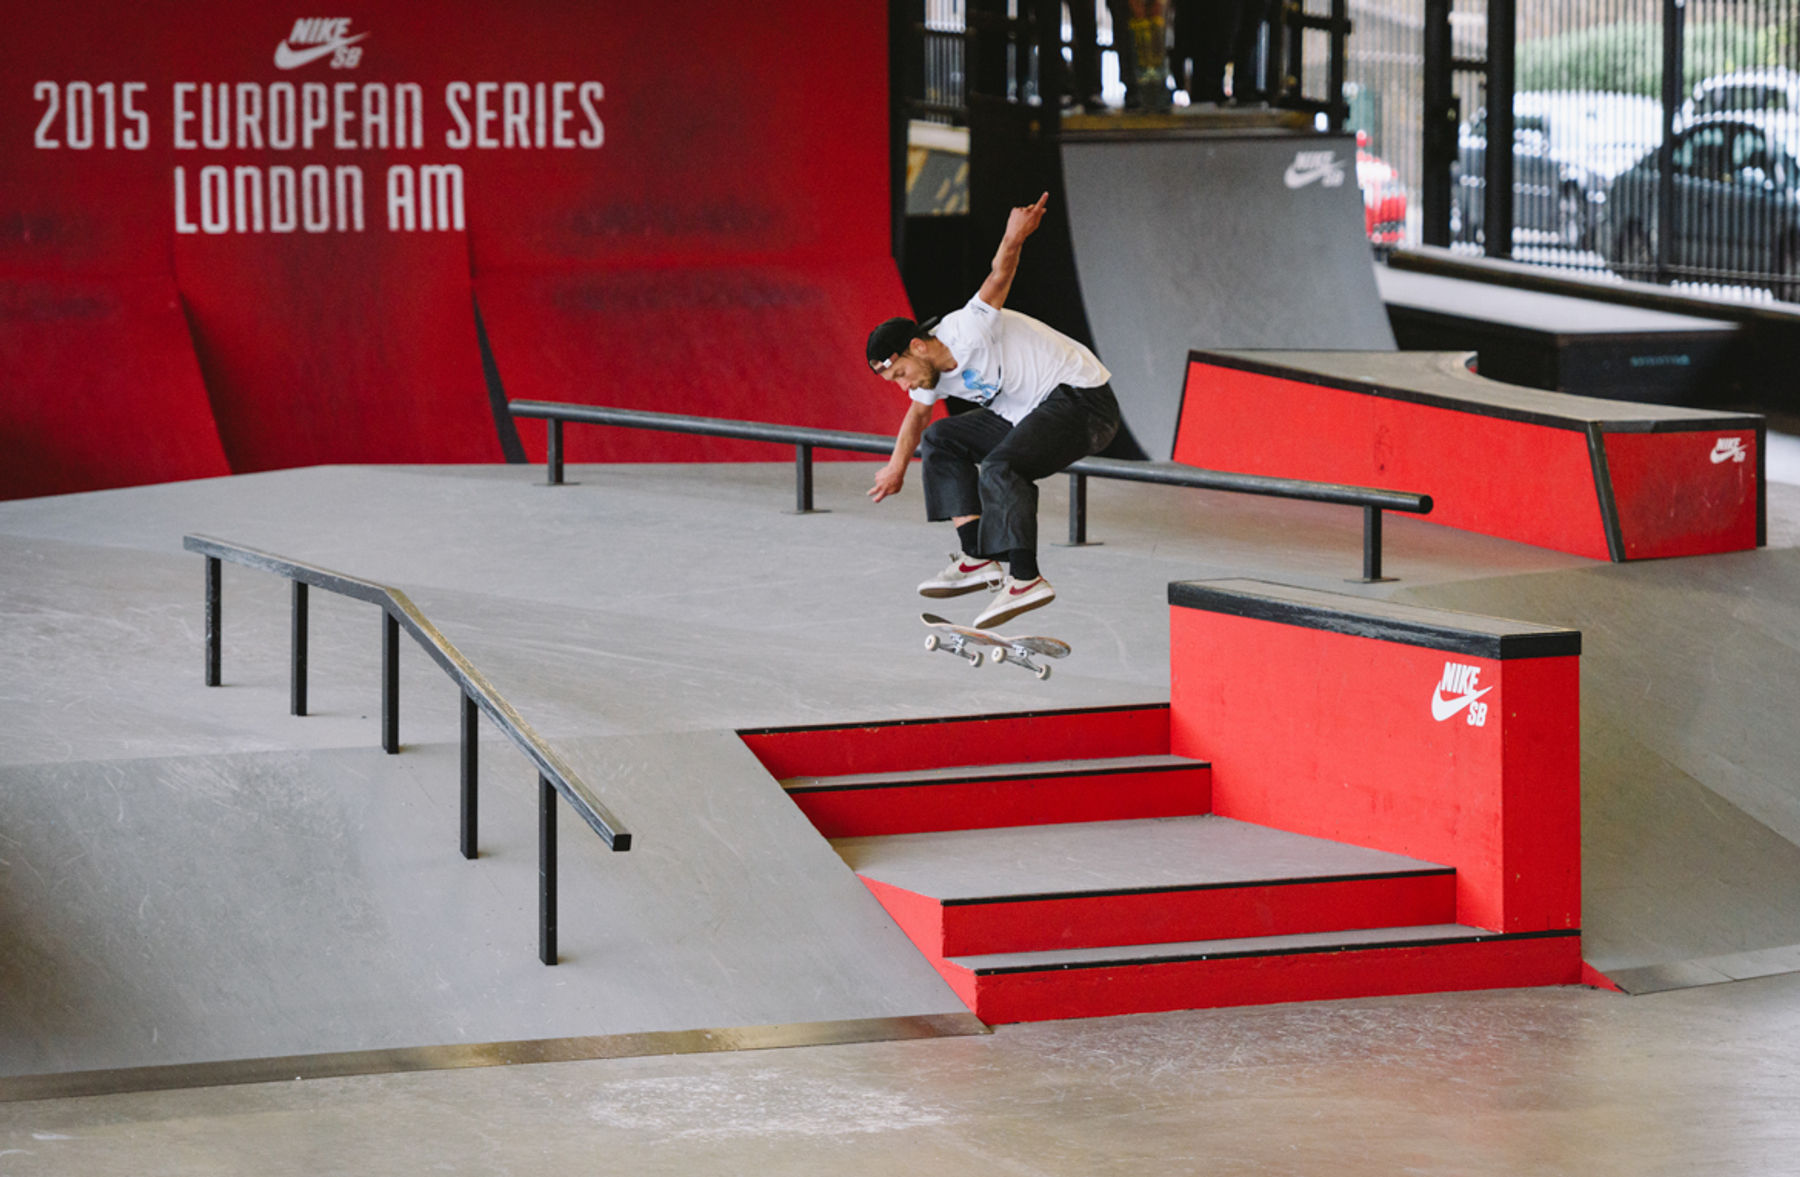 _IHC5481e-Chris-Jones-Switch-Heelflip-Nike-SB-London-AM-Day-2-June-2015-Photographer-Maksim-Kalanep